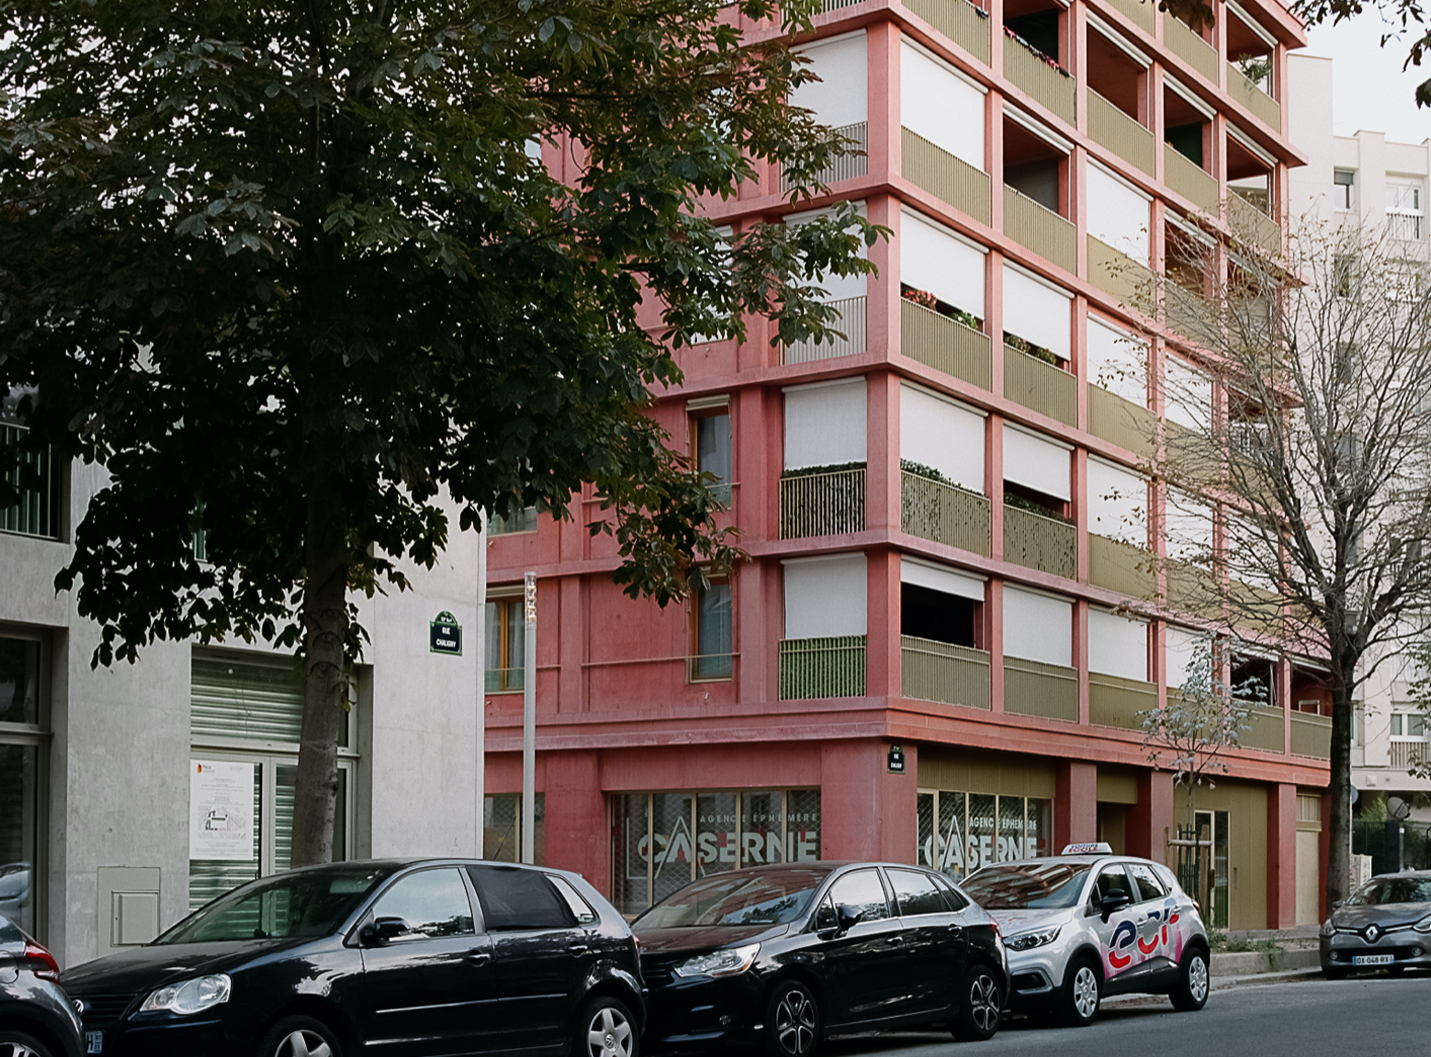 Reuilly Residential Building  / Charles-Henri Tachon, architecture & paysage